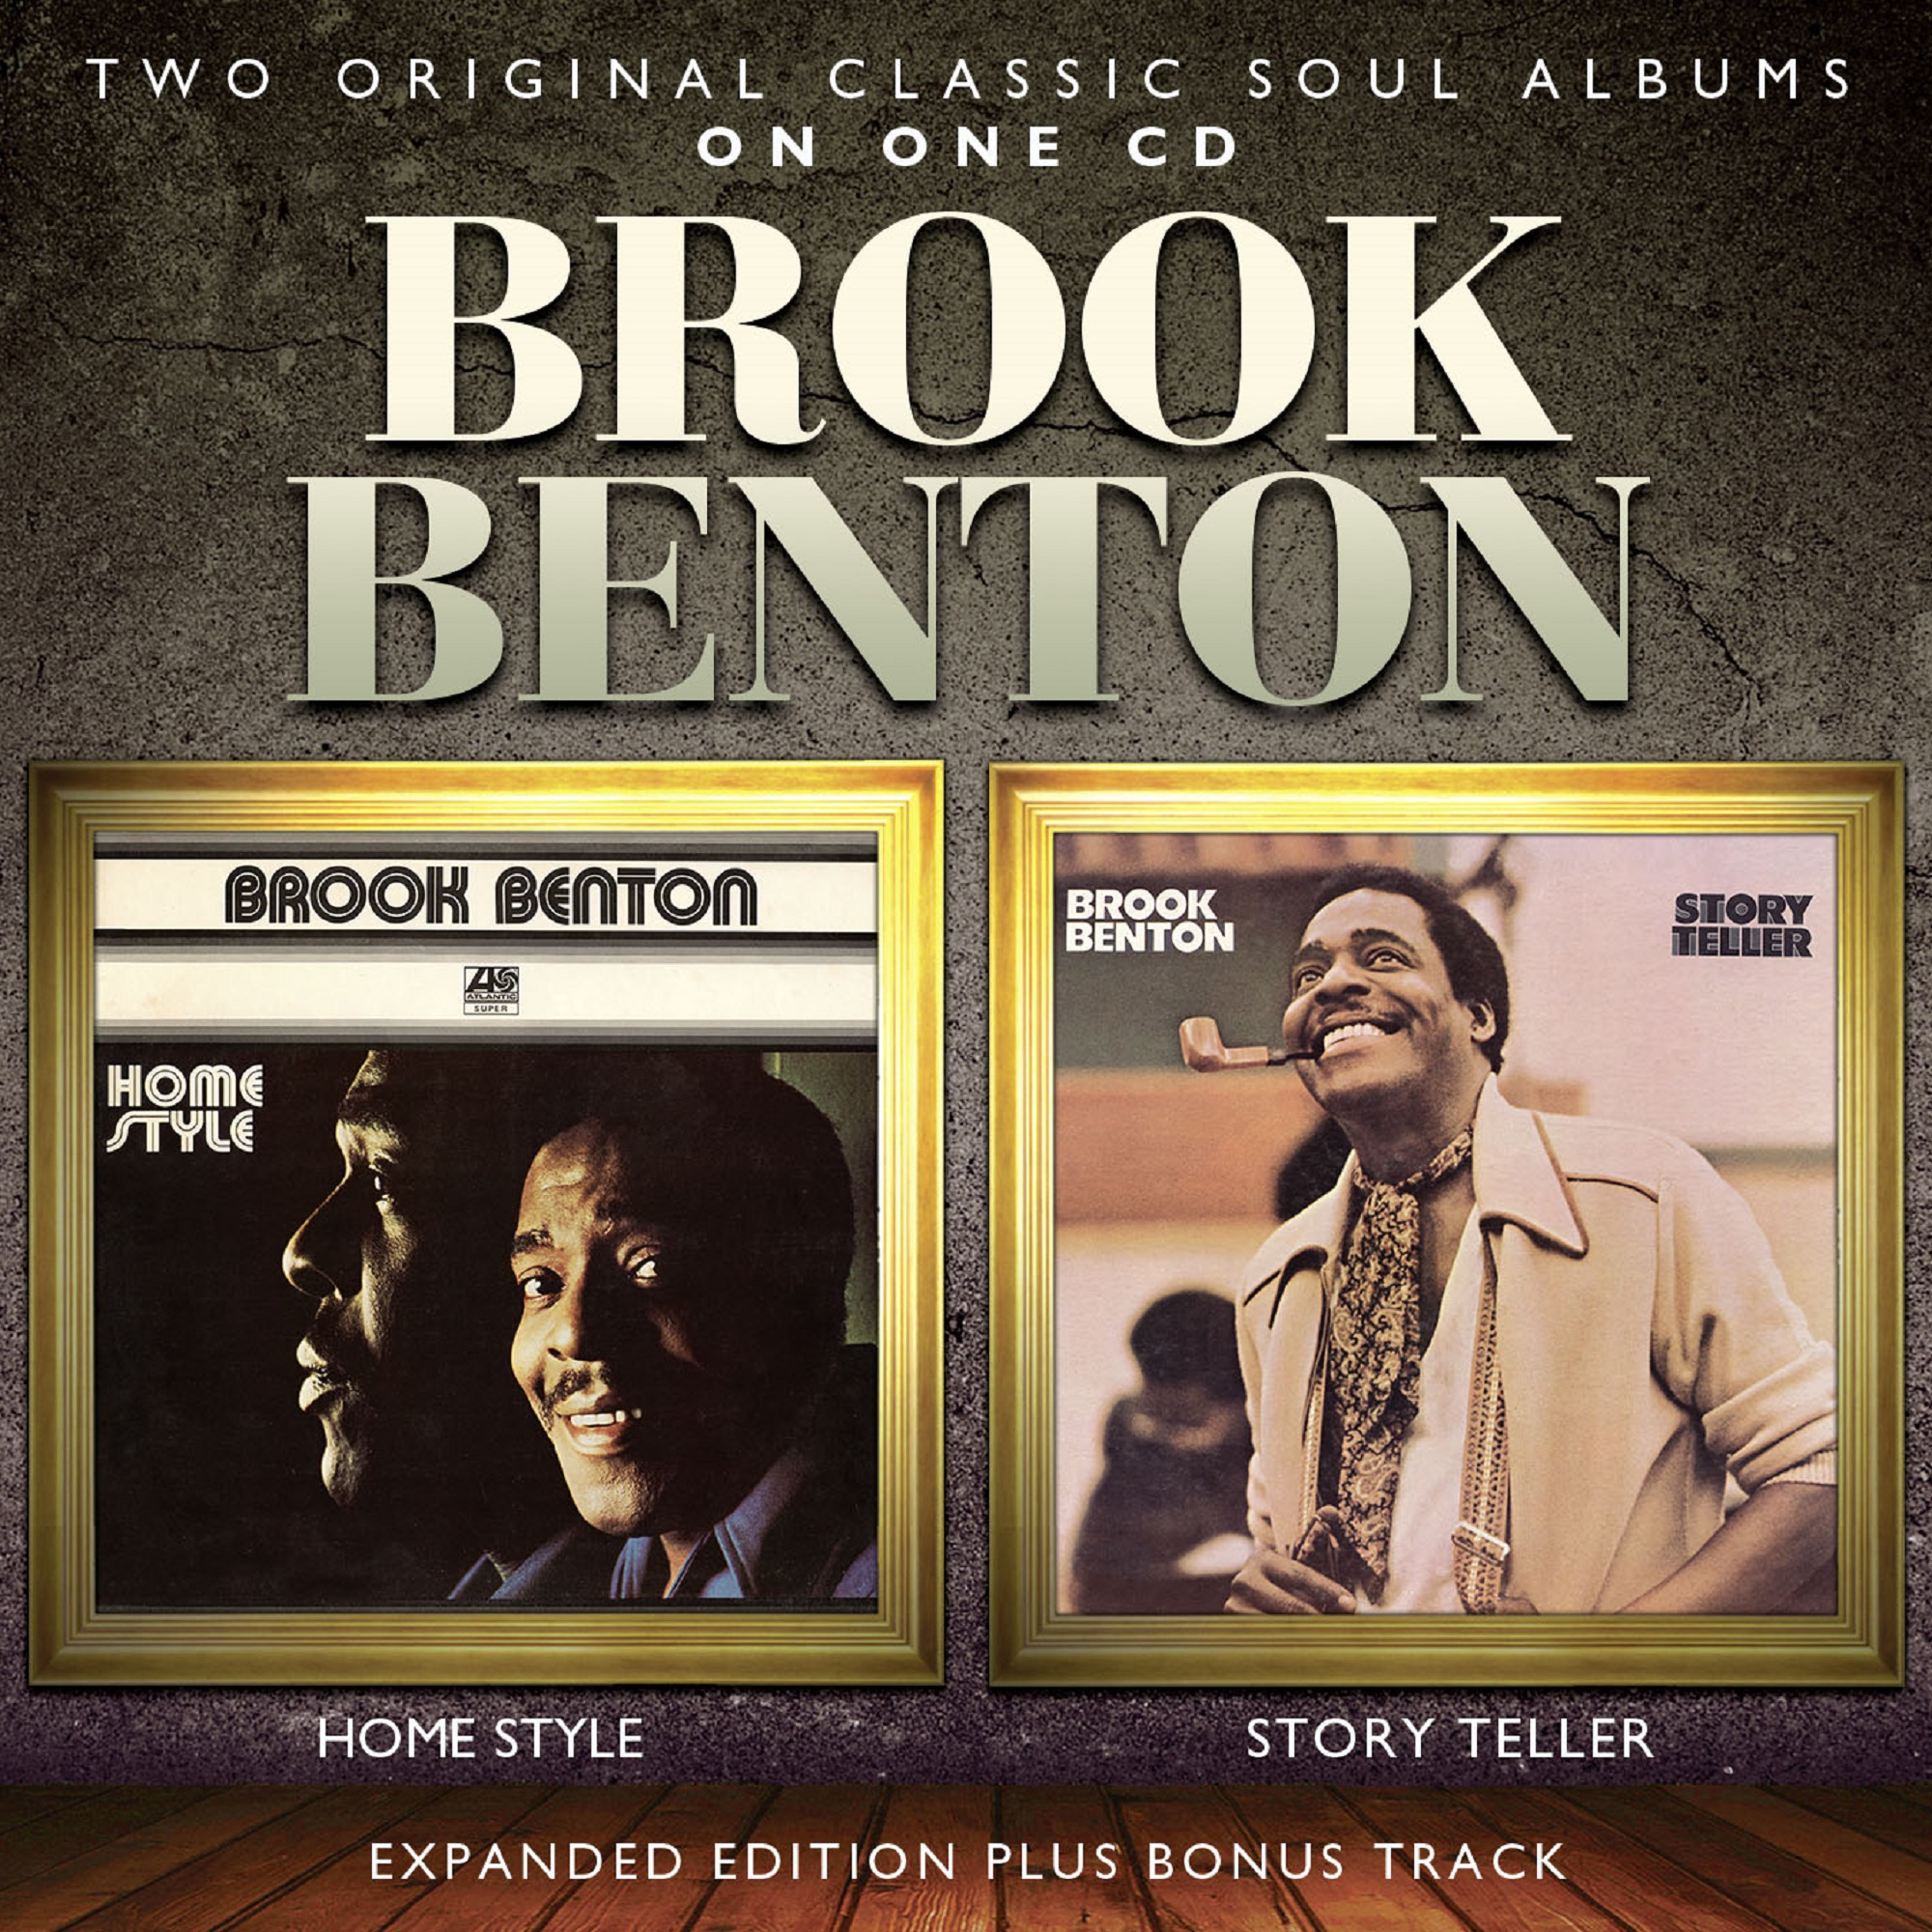 BROOK-BENTON